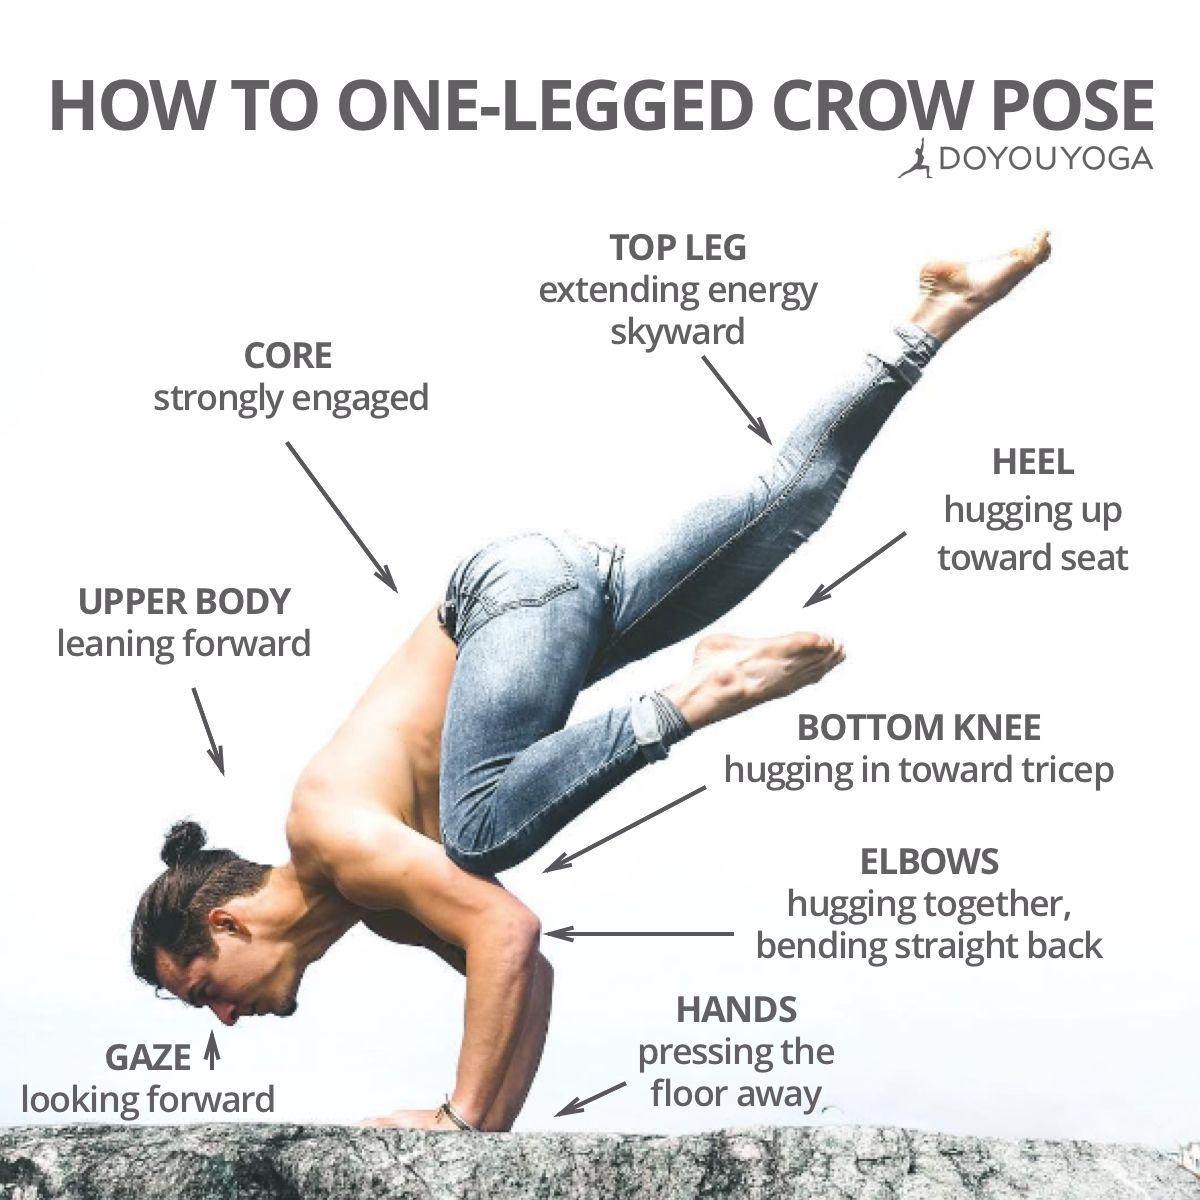 All The Steps To Fly Your Crow With One Leg Dcmlifestyle